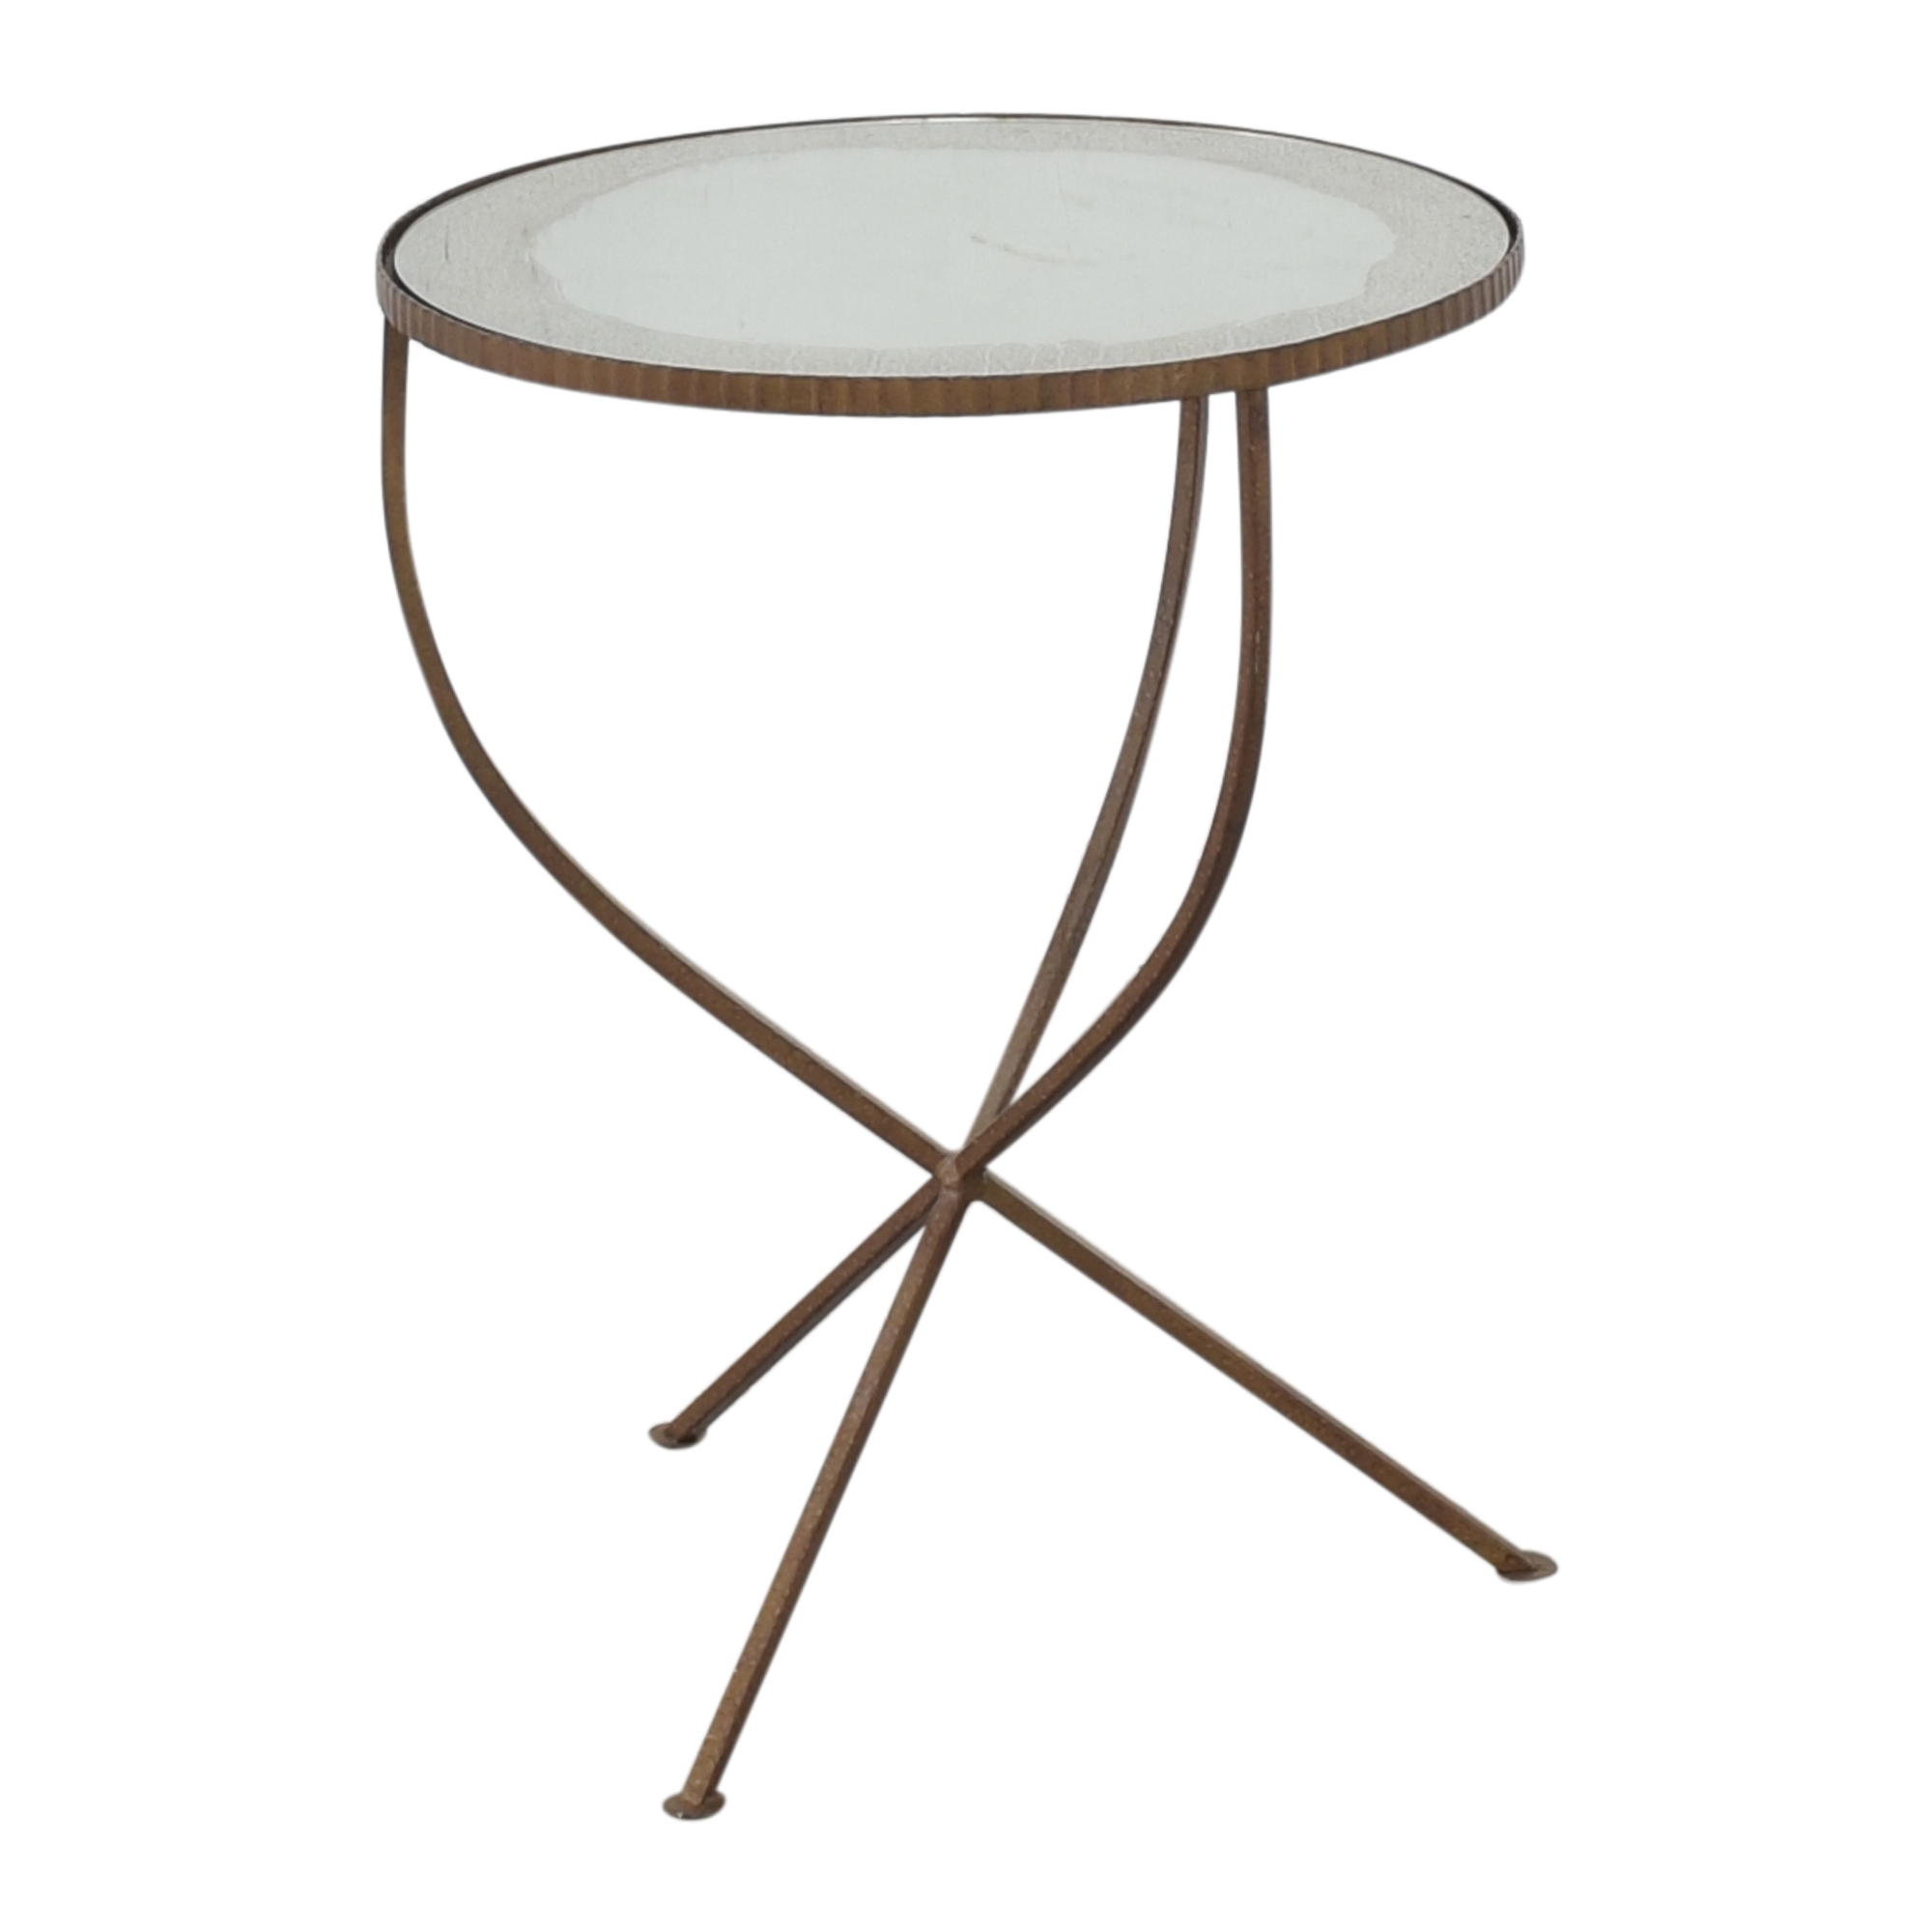 buy Crate & Barrel Round Coffee Table Crate & Barrel